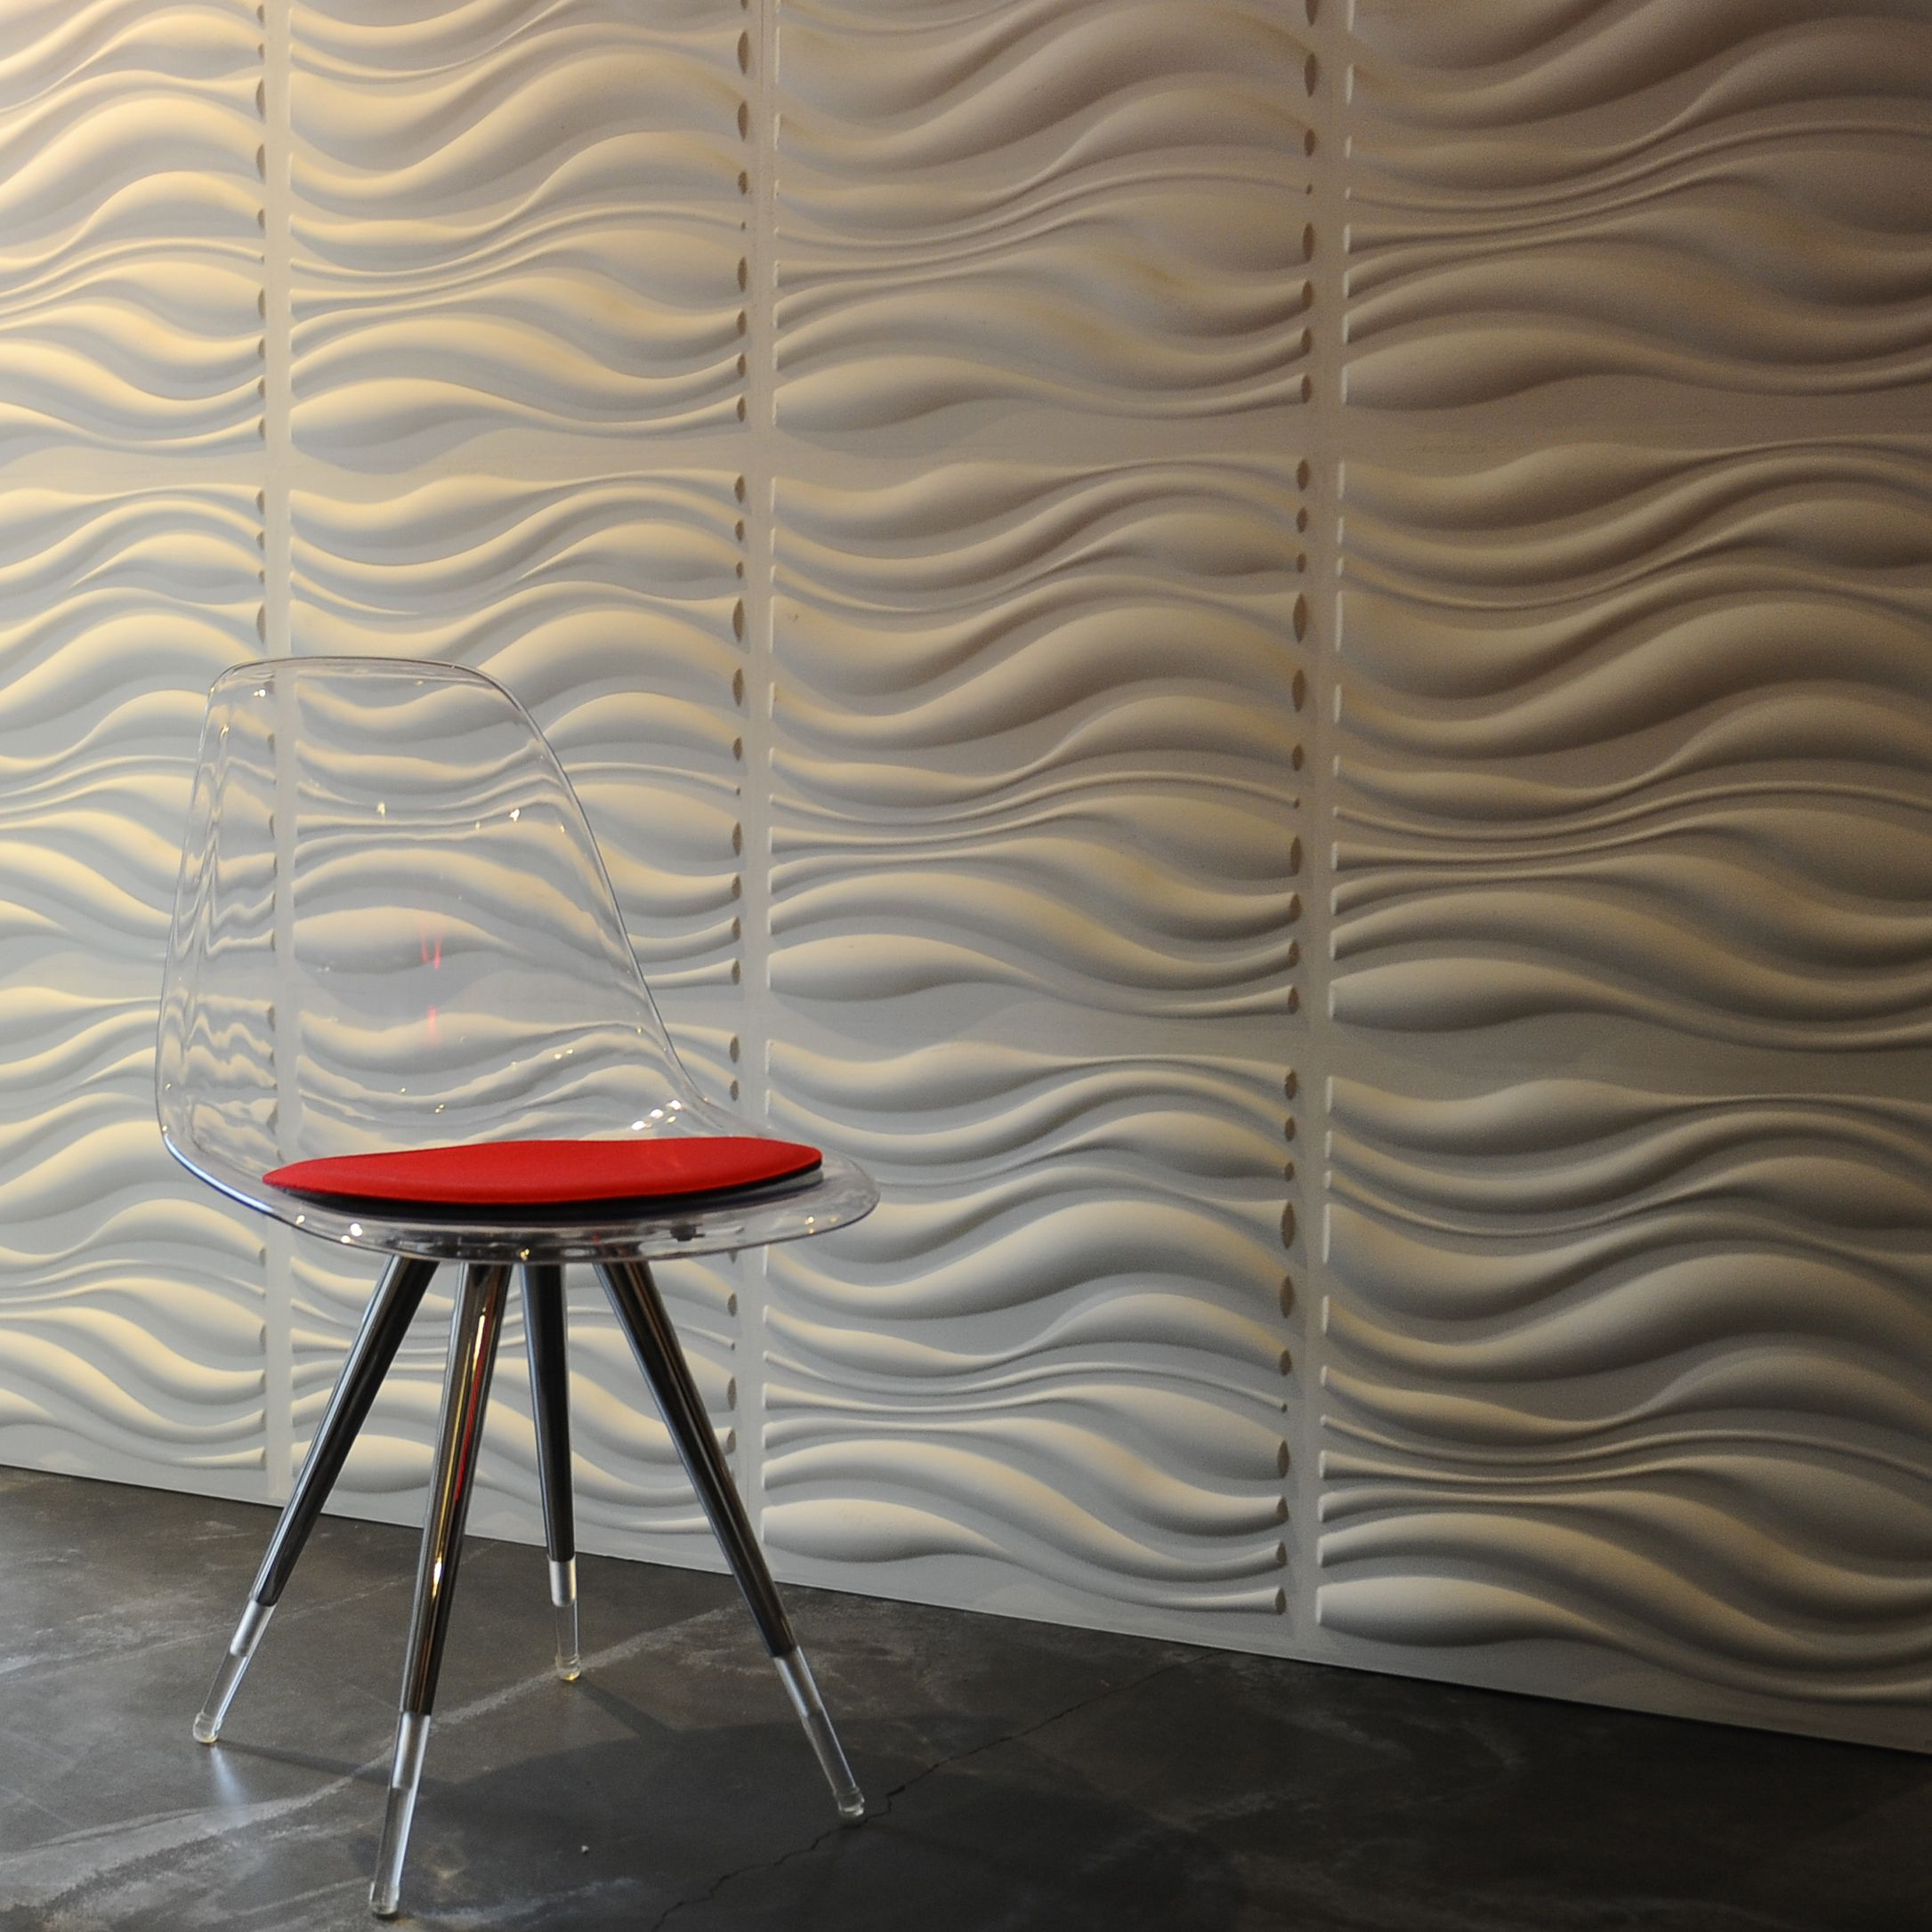 textured wall panelsu201a decorative 3d wall - Decorative Wall Designs